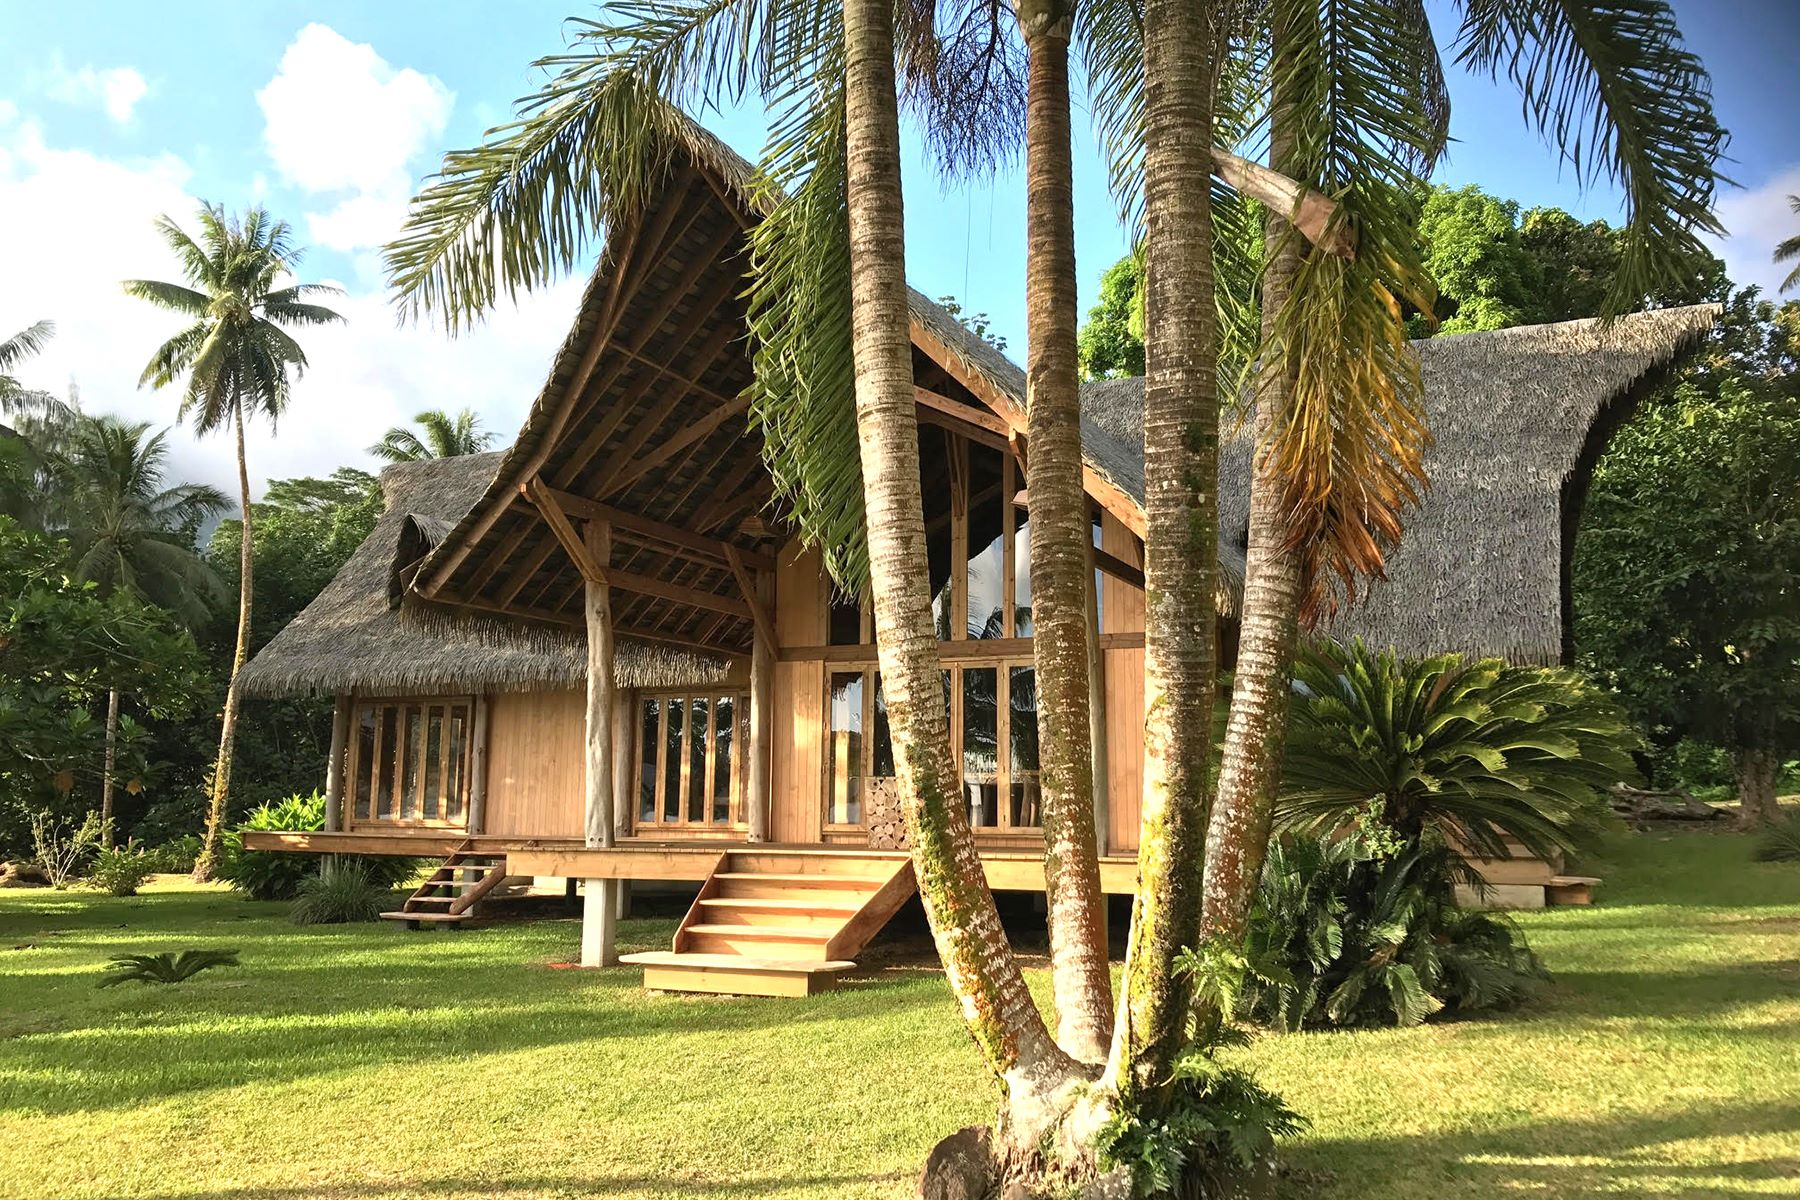 Single Family Home for Sale at Polynesian flavor in Taha'a Tahaa, French Polynesia